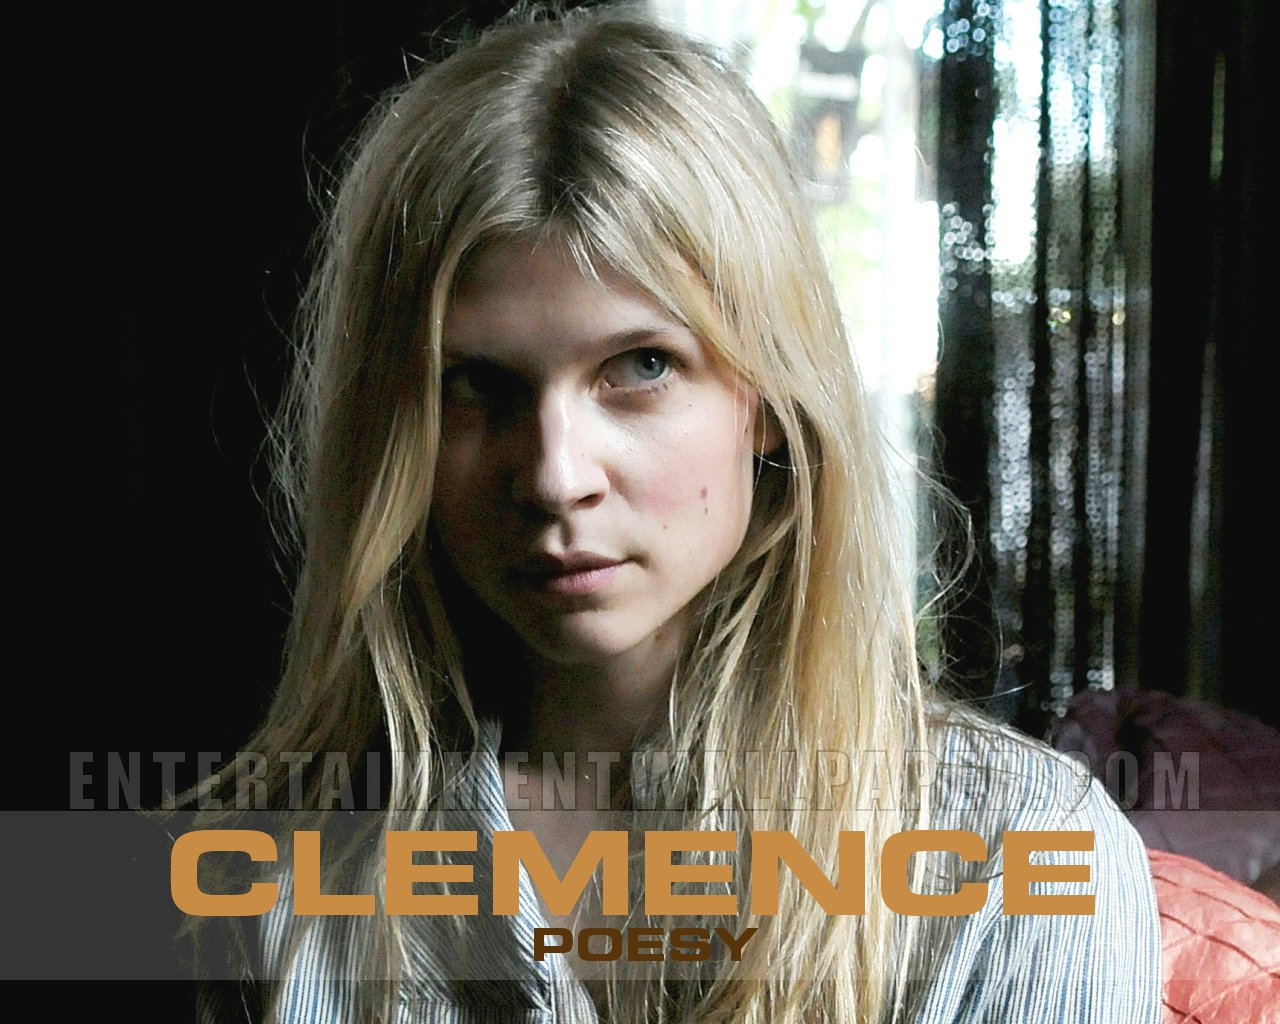 1280x1024 - Clemence Poesy Wallpapers 25